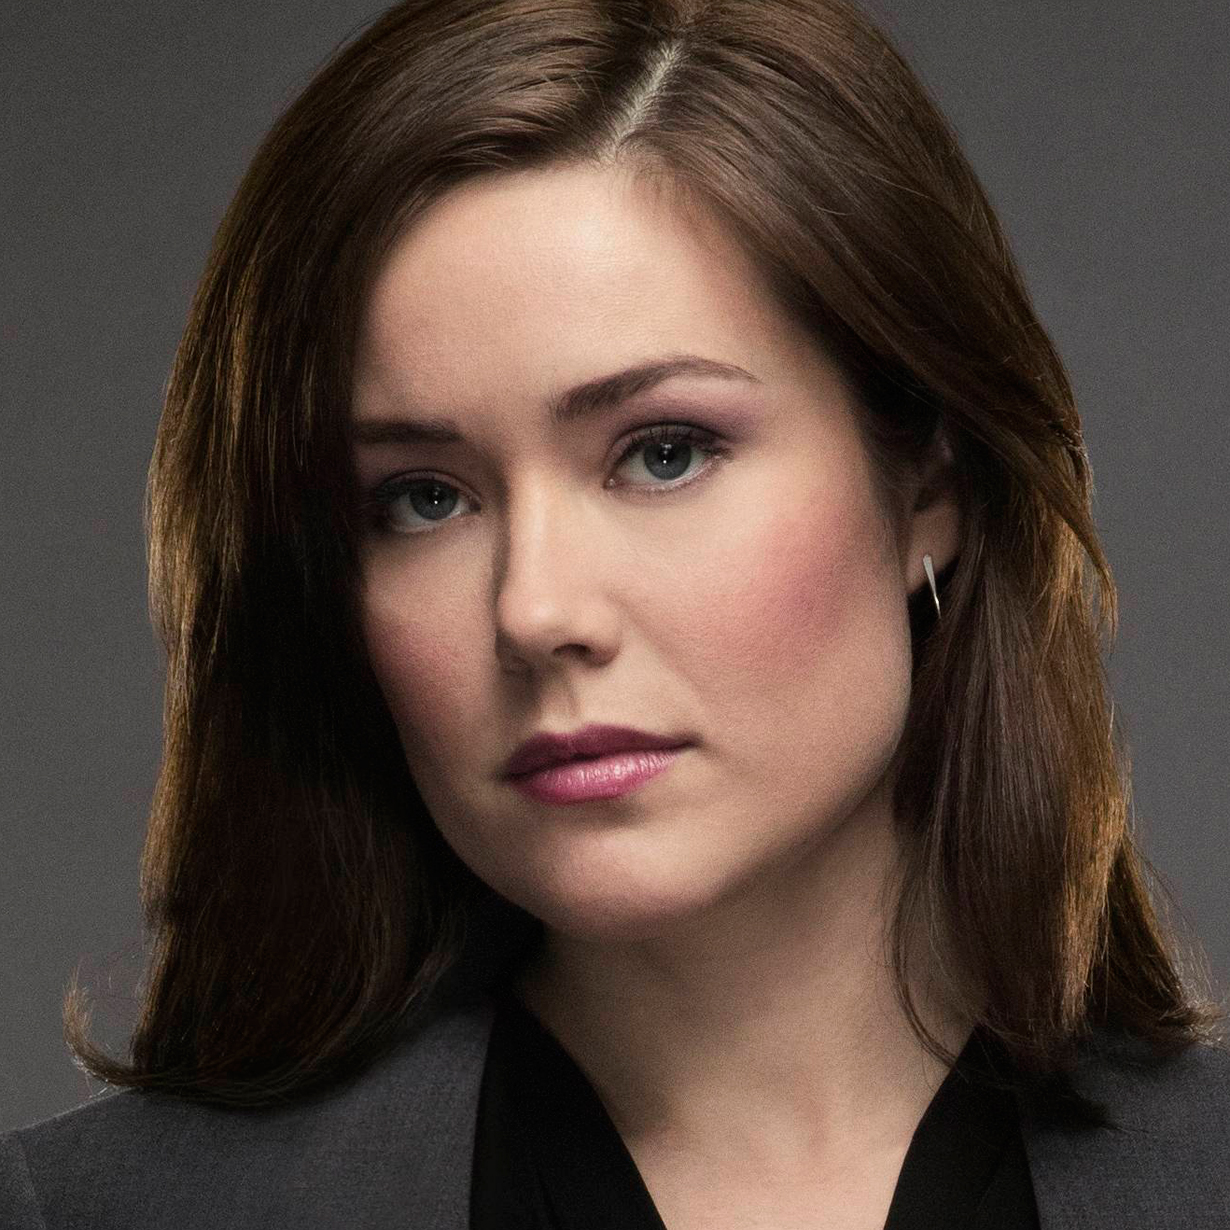 M Megan Boone Arrest